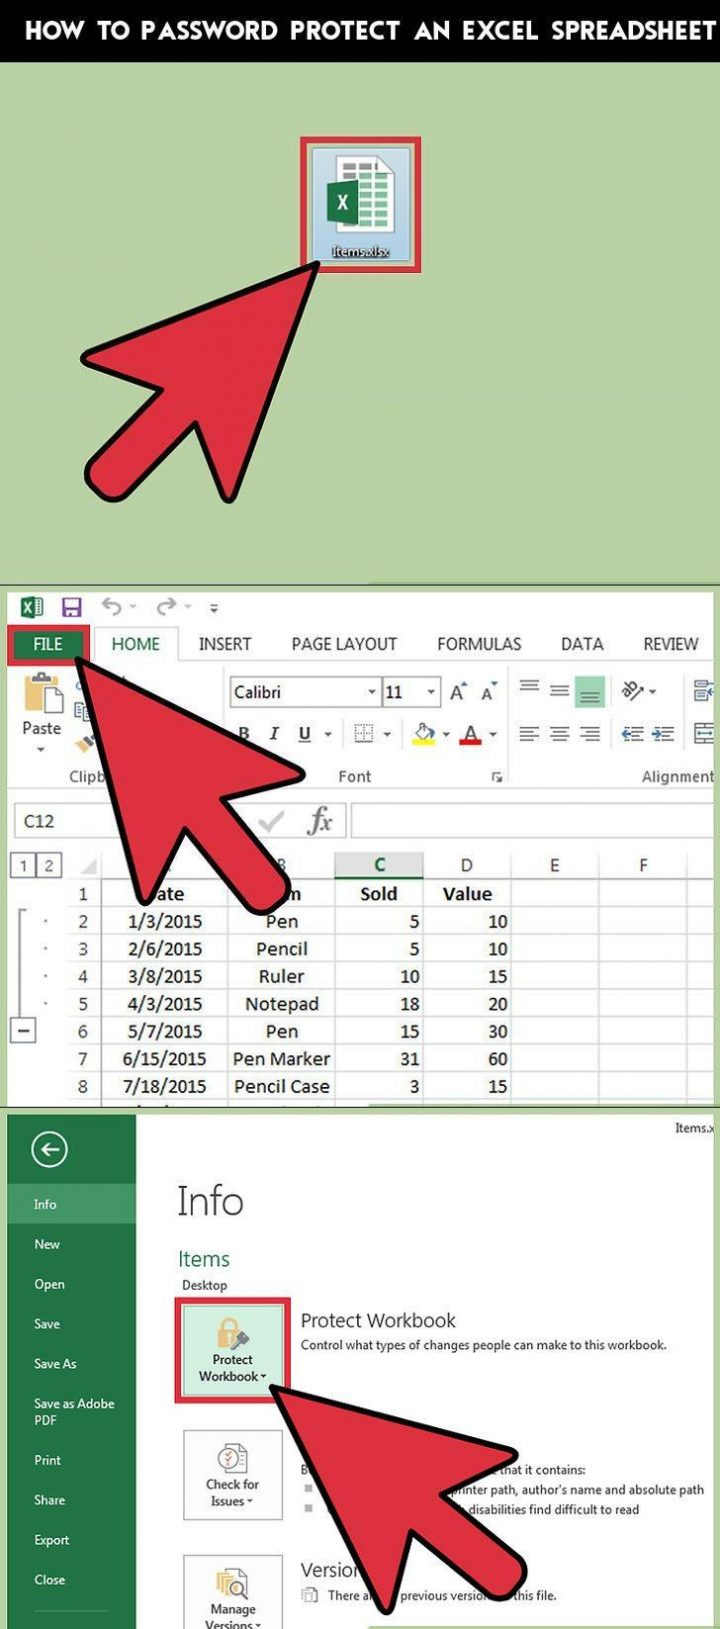 How Do You Password Protect An Excel Spreadsheet Inside How To Password Protect An Excel Spreadsheet  Practical Information